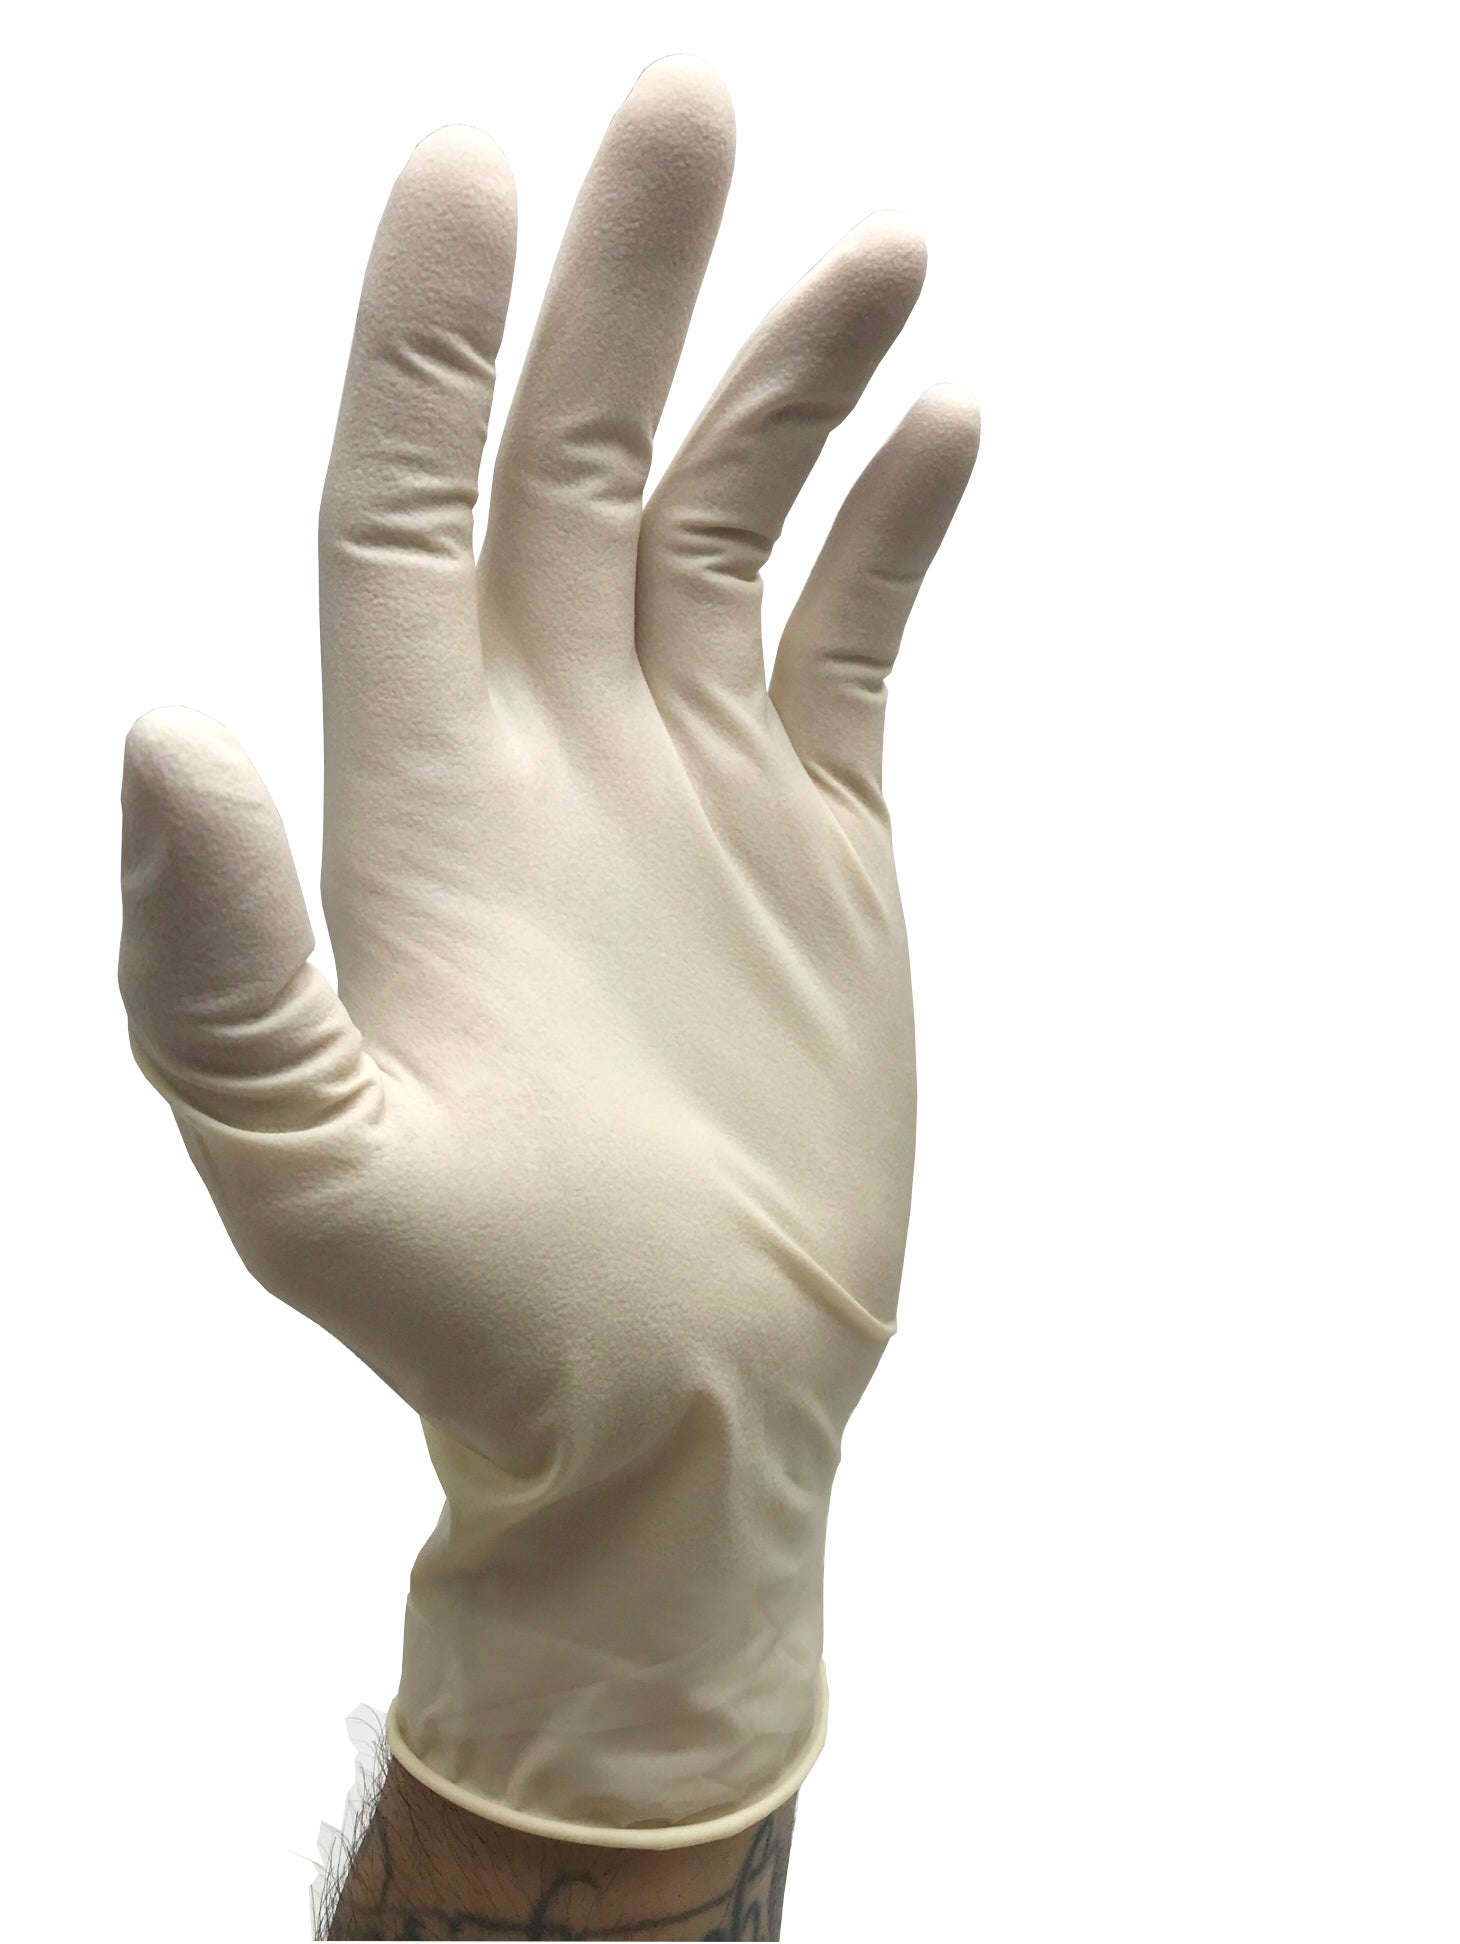 IRONLINE Textured Latex Gloves-Box of 100 Gloves